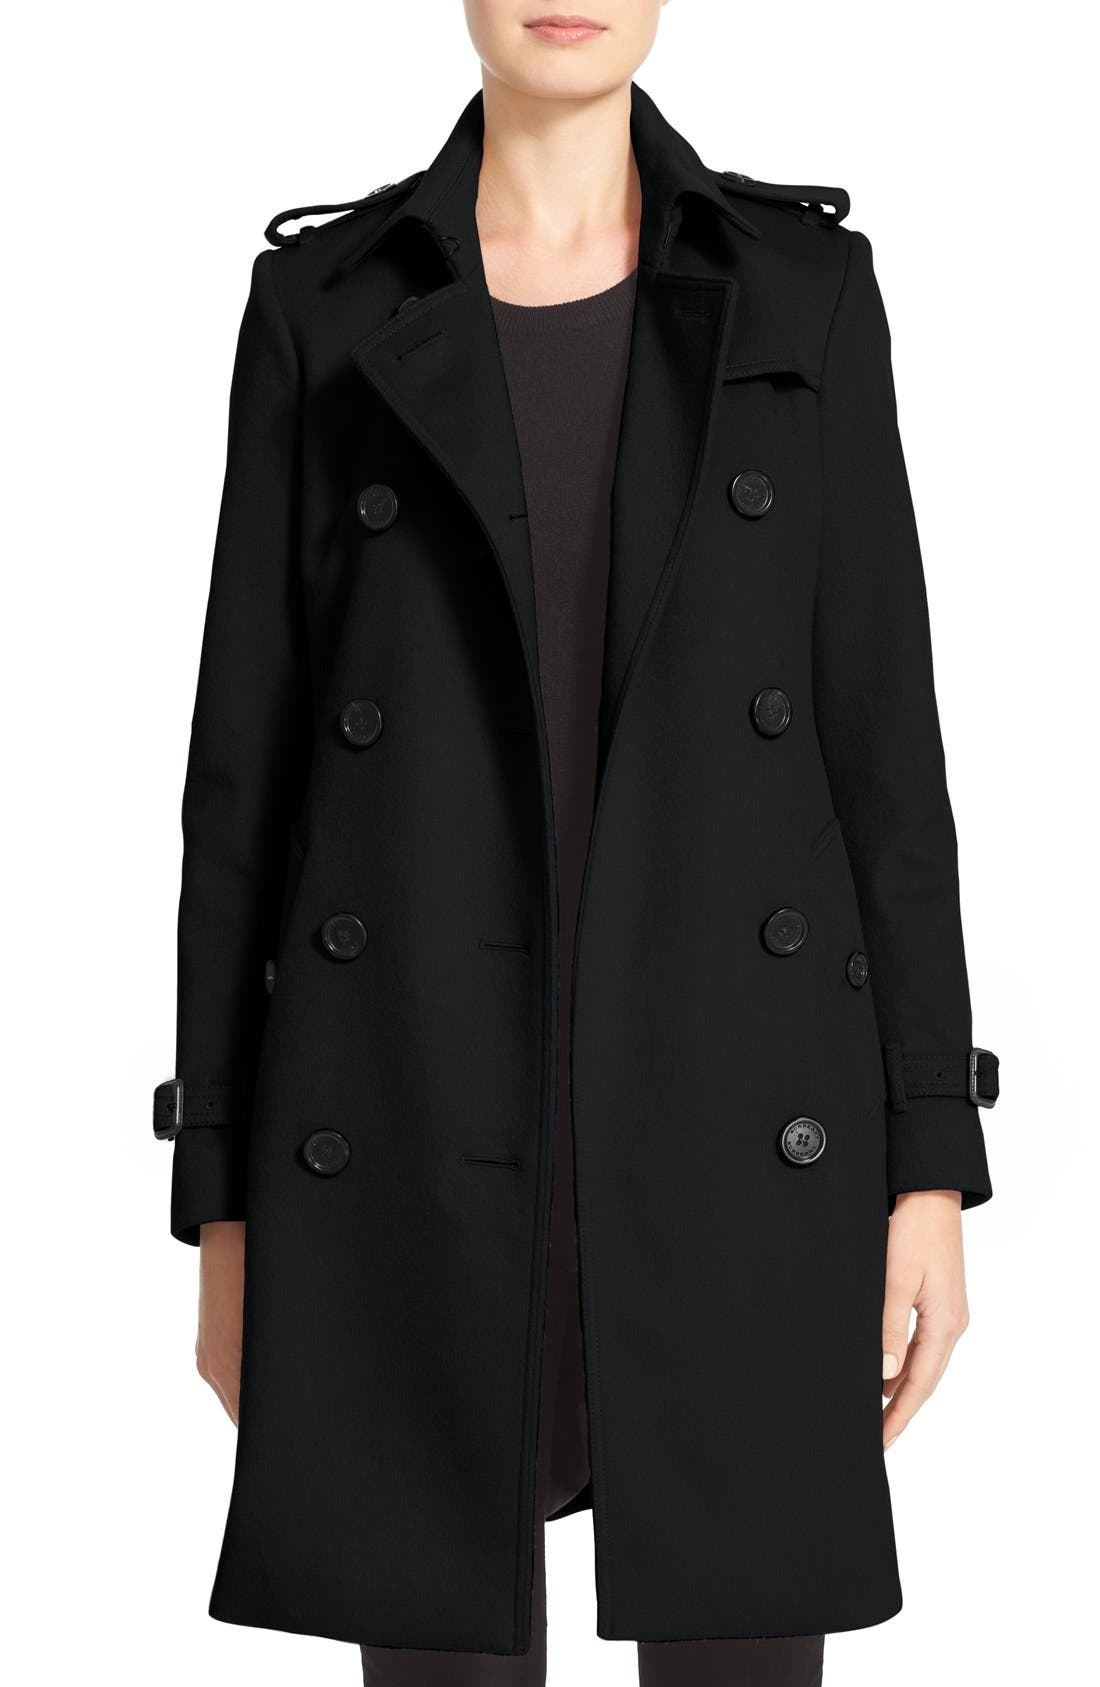 Burberry Kensington Double Breasted Wool & Cashmere Trench Coat